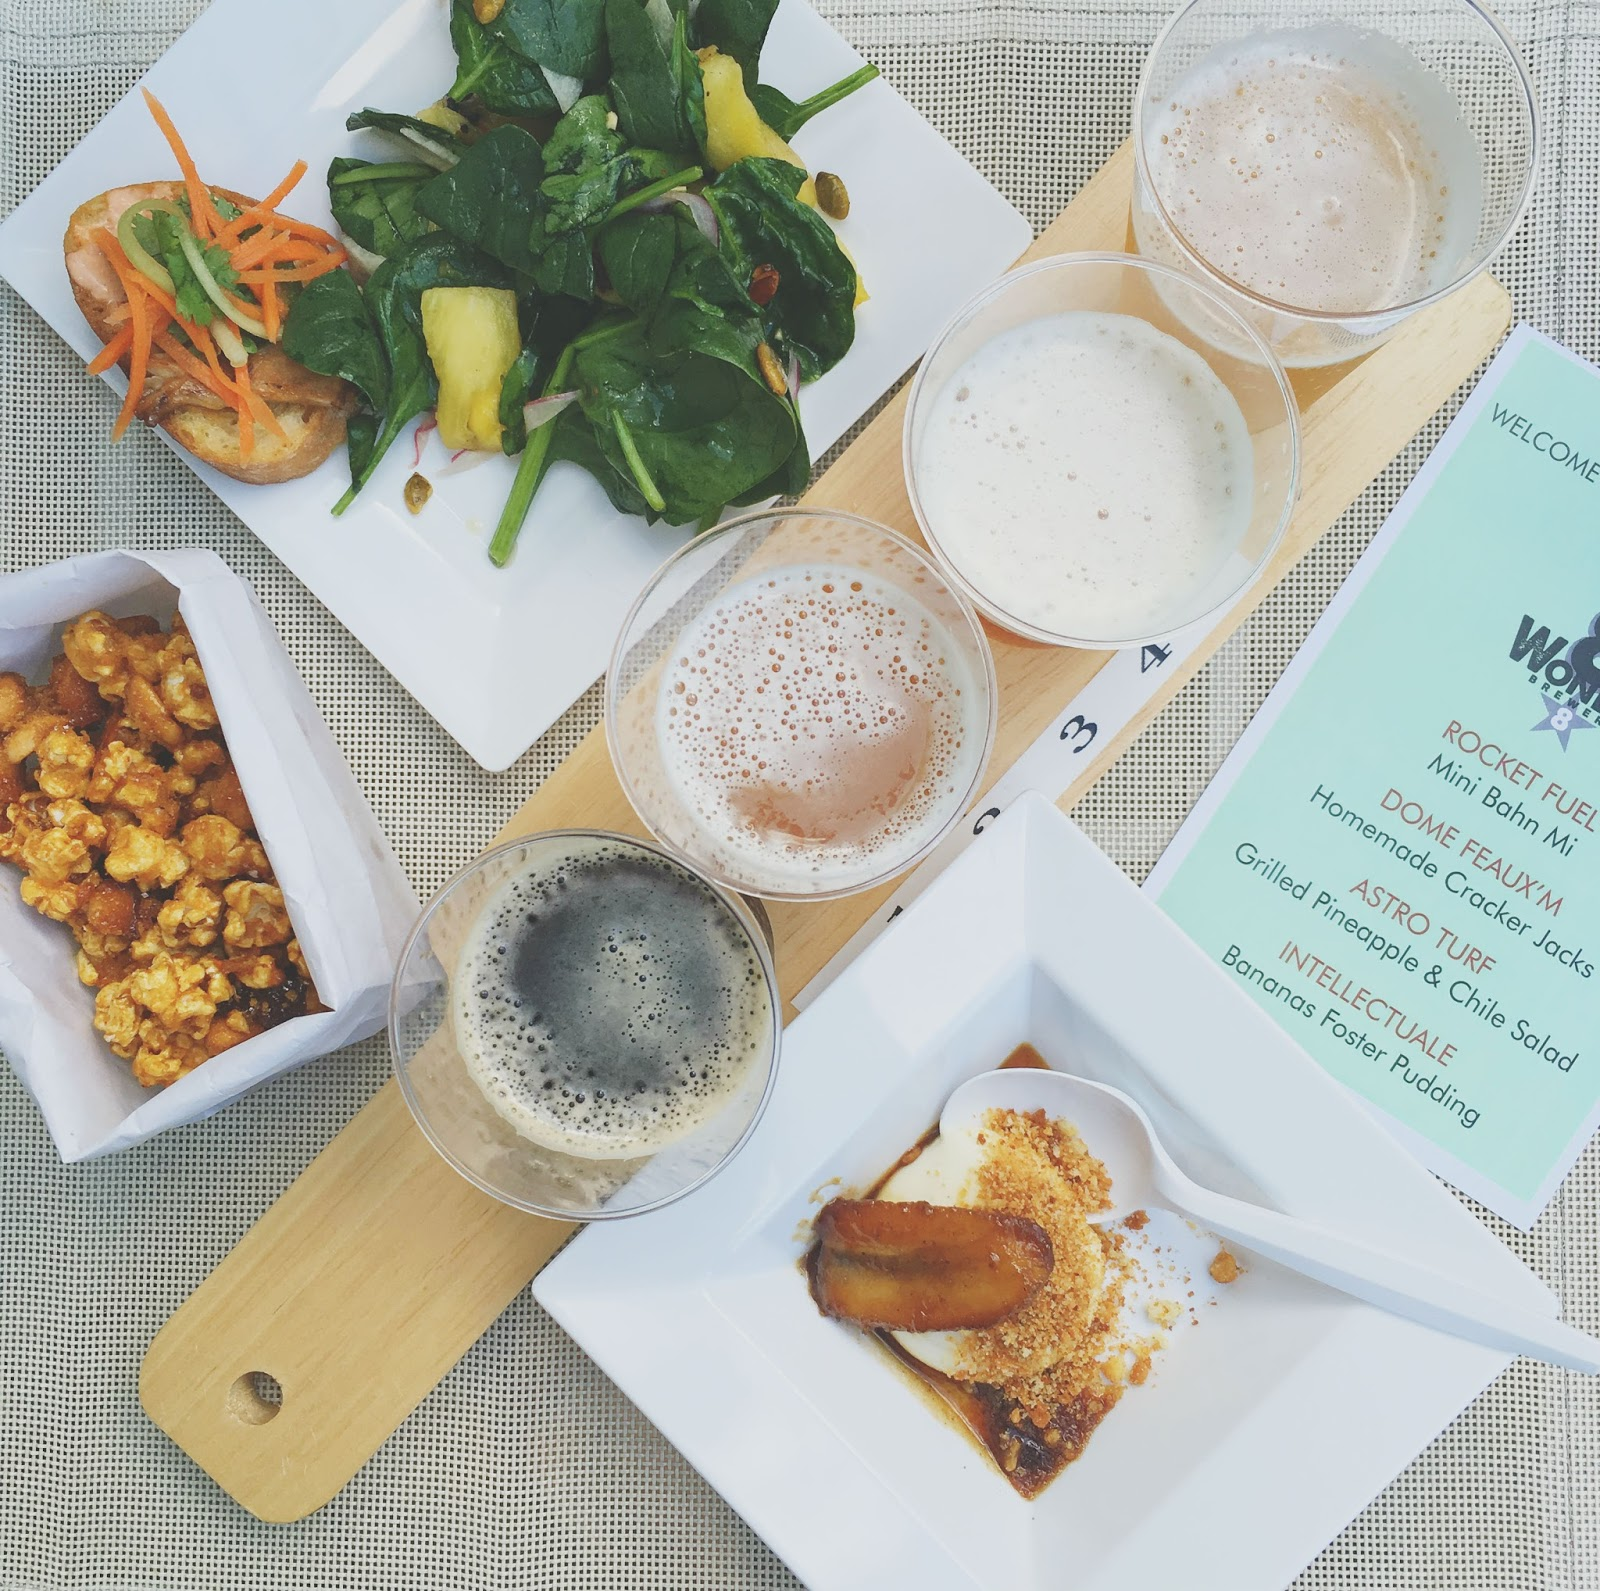 food and beer pairing at Sundown at The Grove - a Houston summertime food and drink event